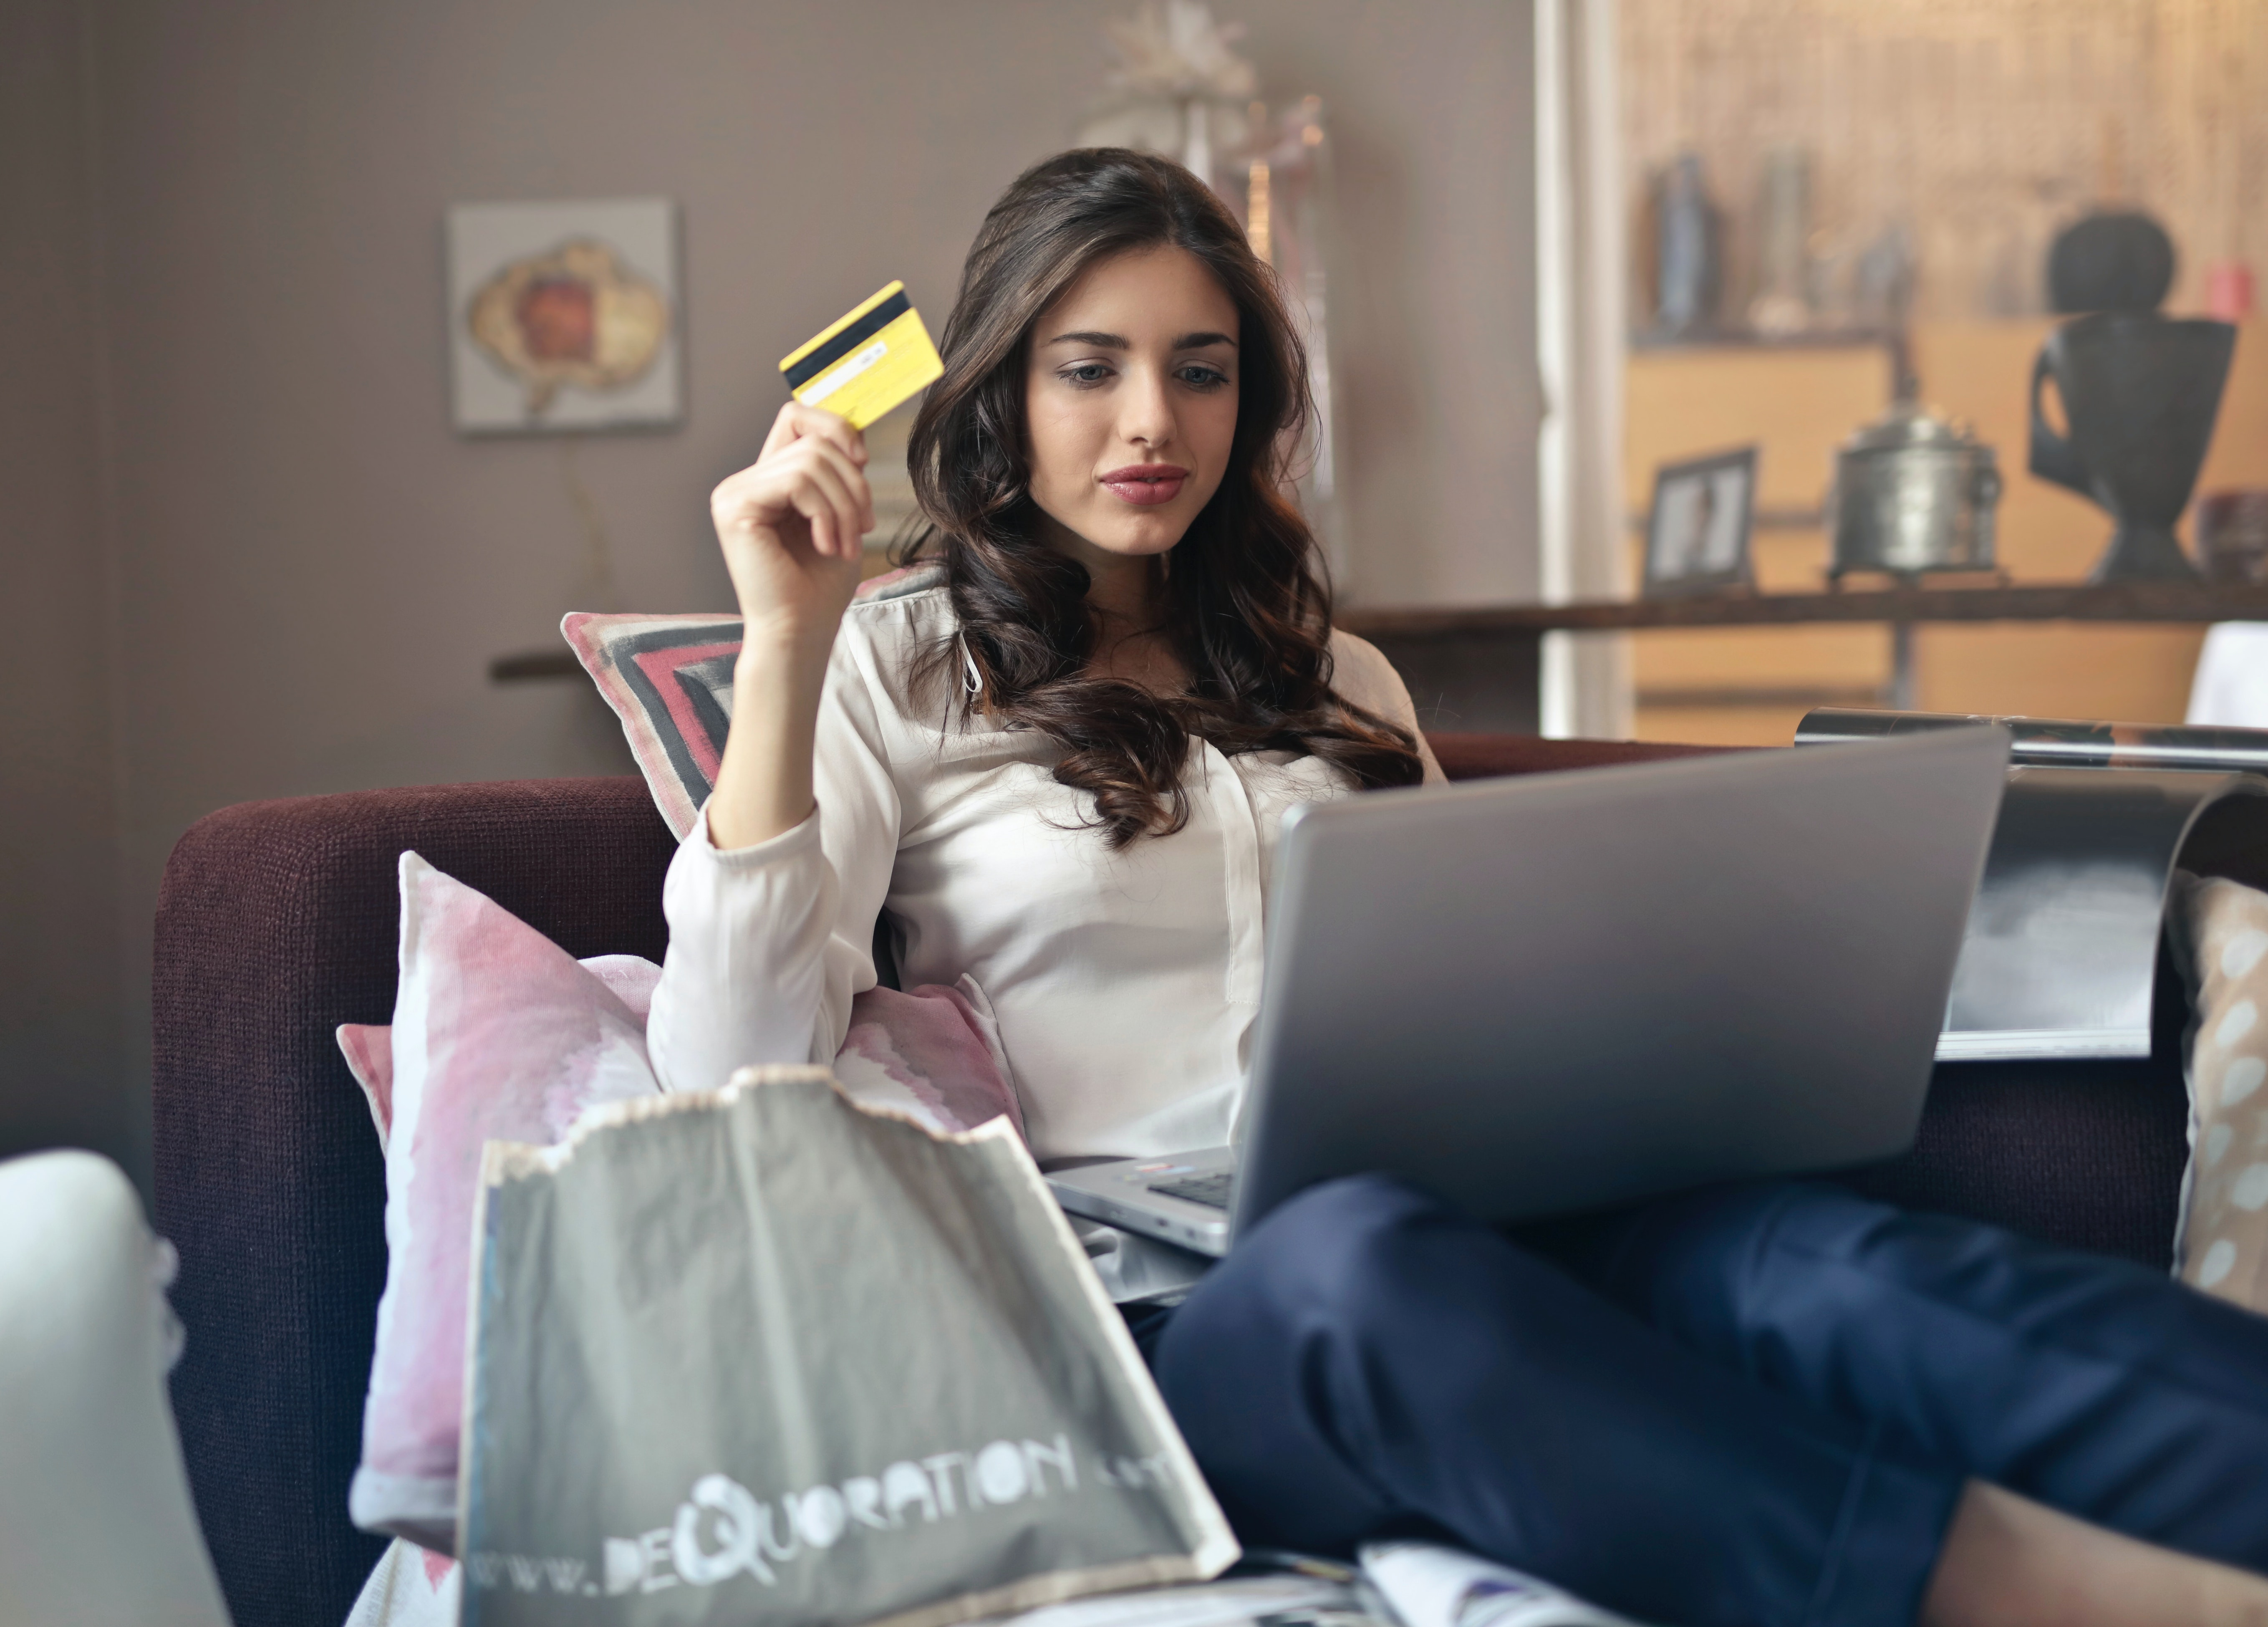 woman-shopping-online-with-card-holding-silver-laptop